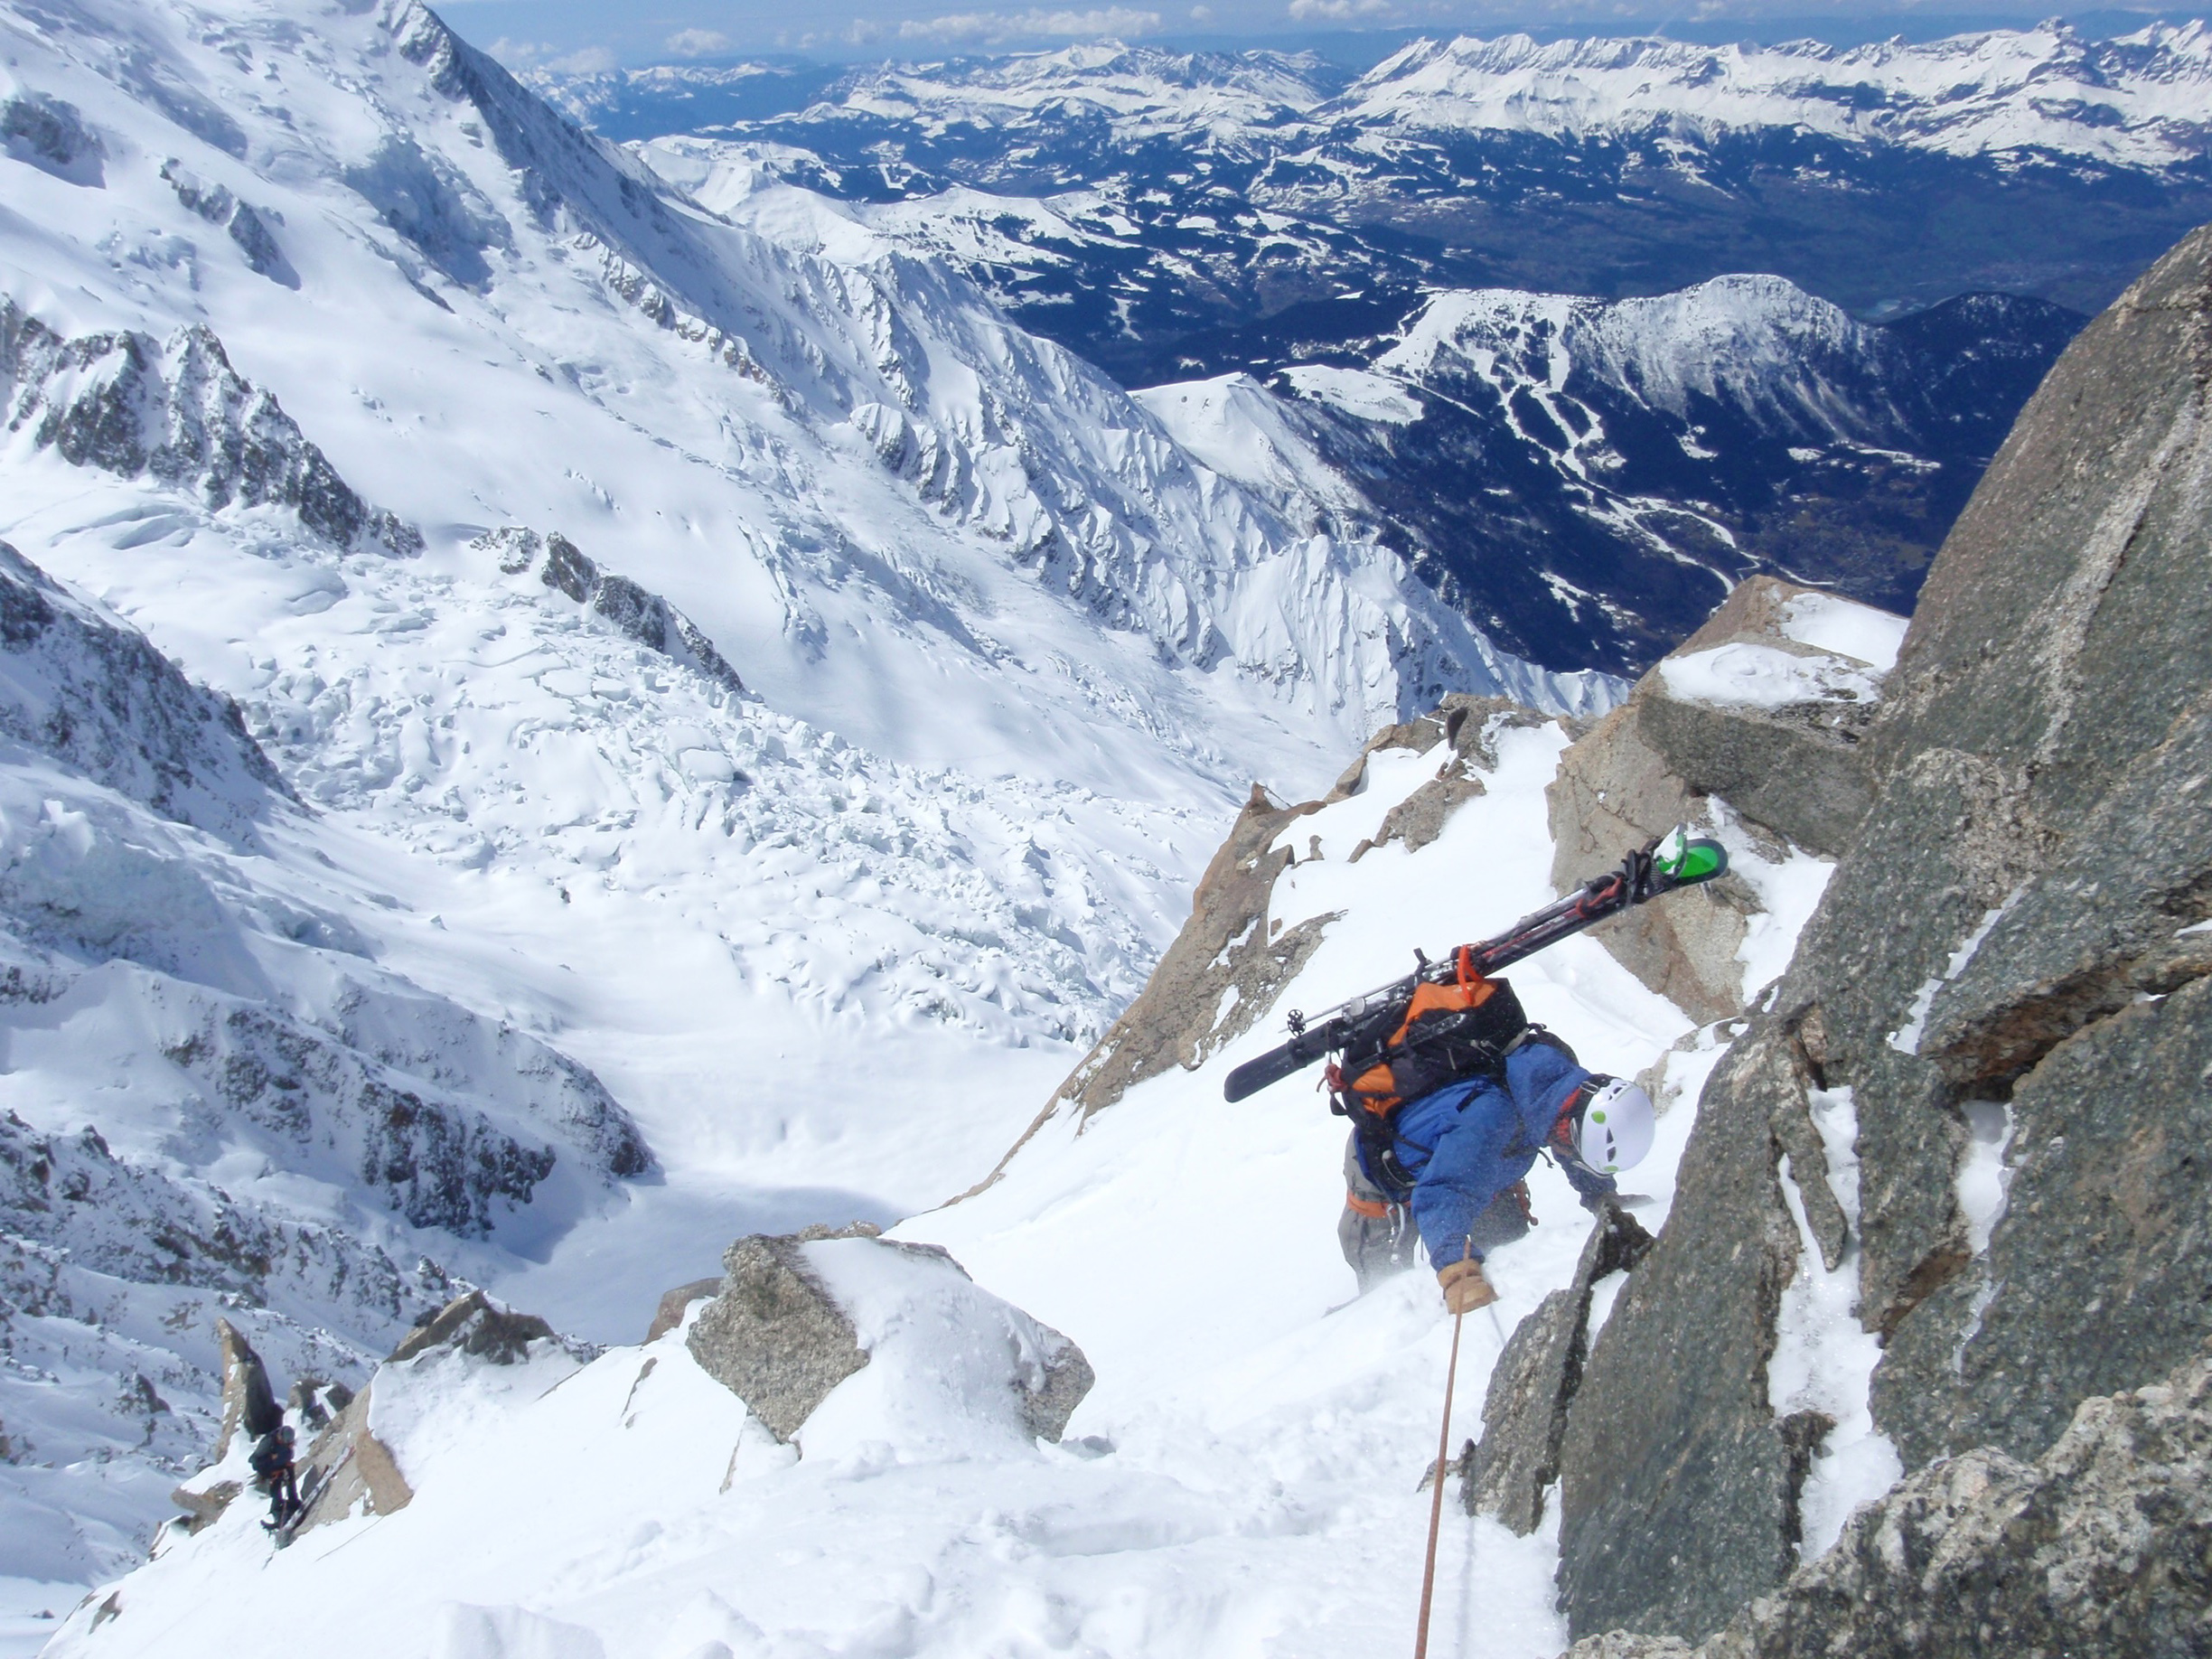 Ski mountaineering in the Mont Blanc Massif, rappeling into the Cosmiques Couloir